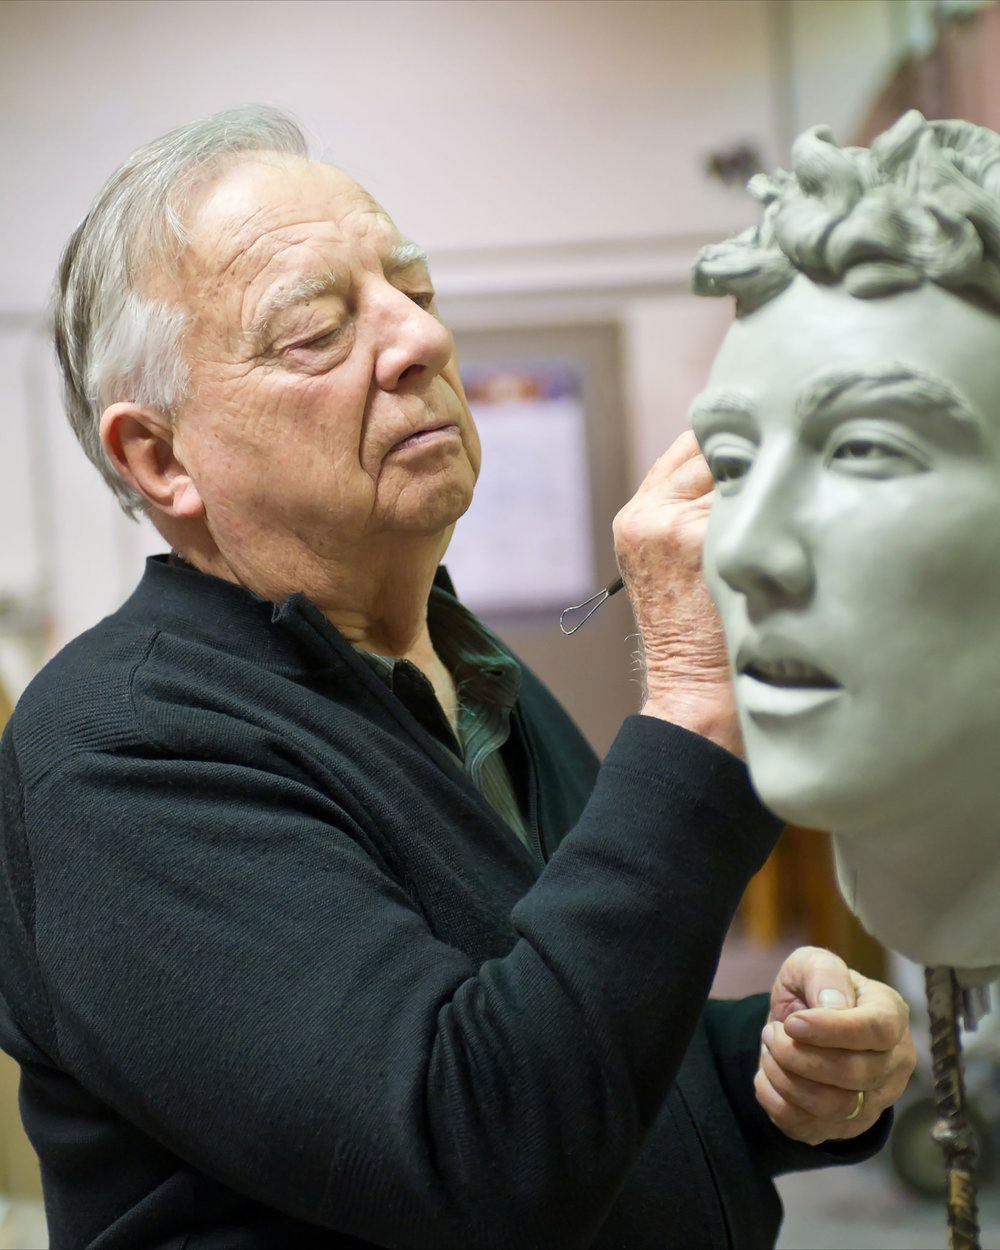 Photo of Seward Johnson sculpting, by David Steele